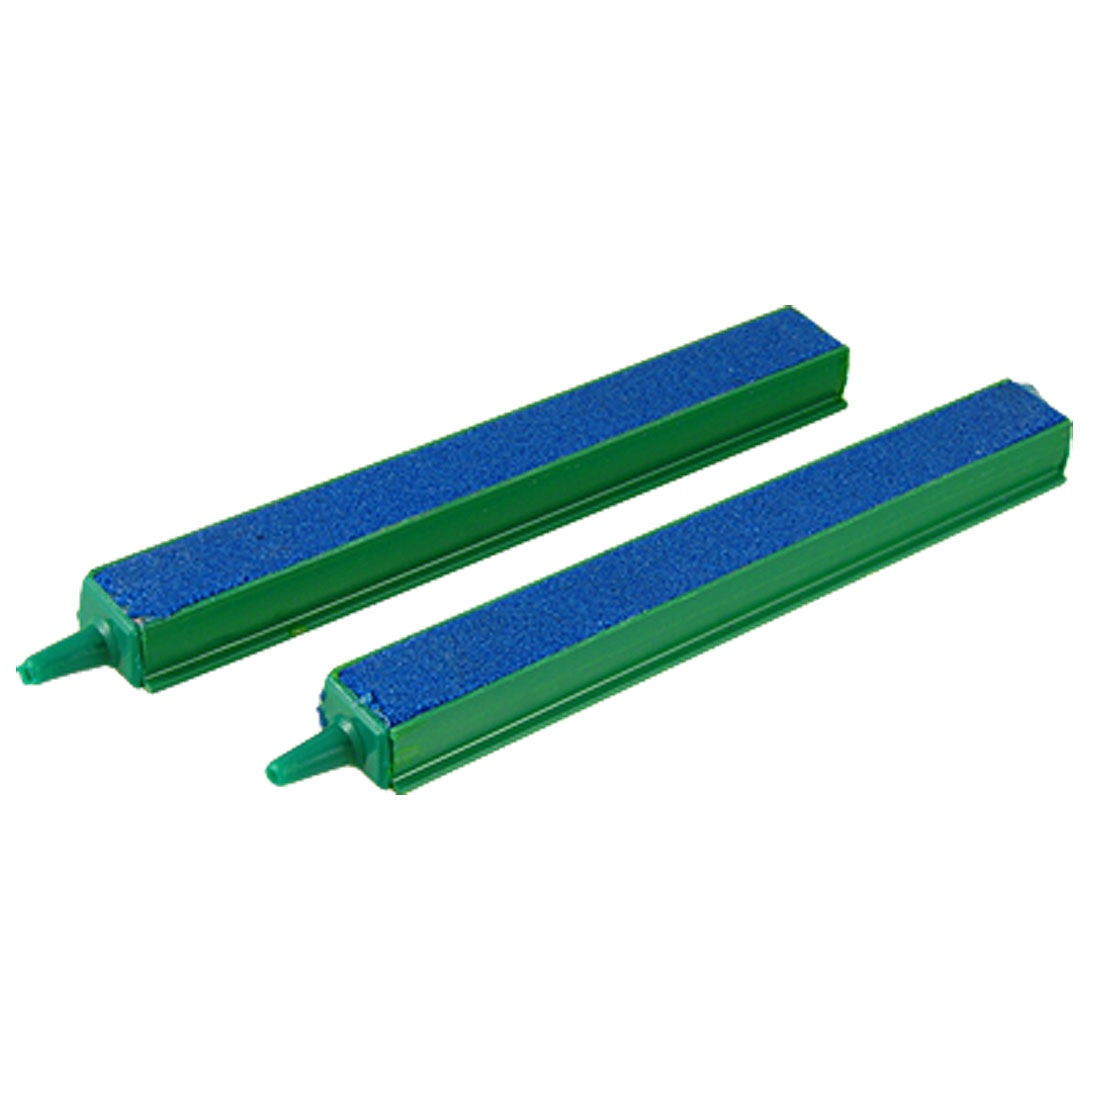 "Aquarium Fish Tank Green Plastic Outlet Connector 6"" Blue Air Stone Bar 2 Pcs"